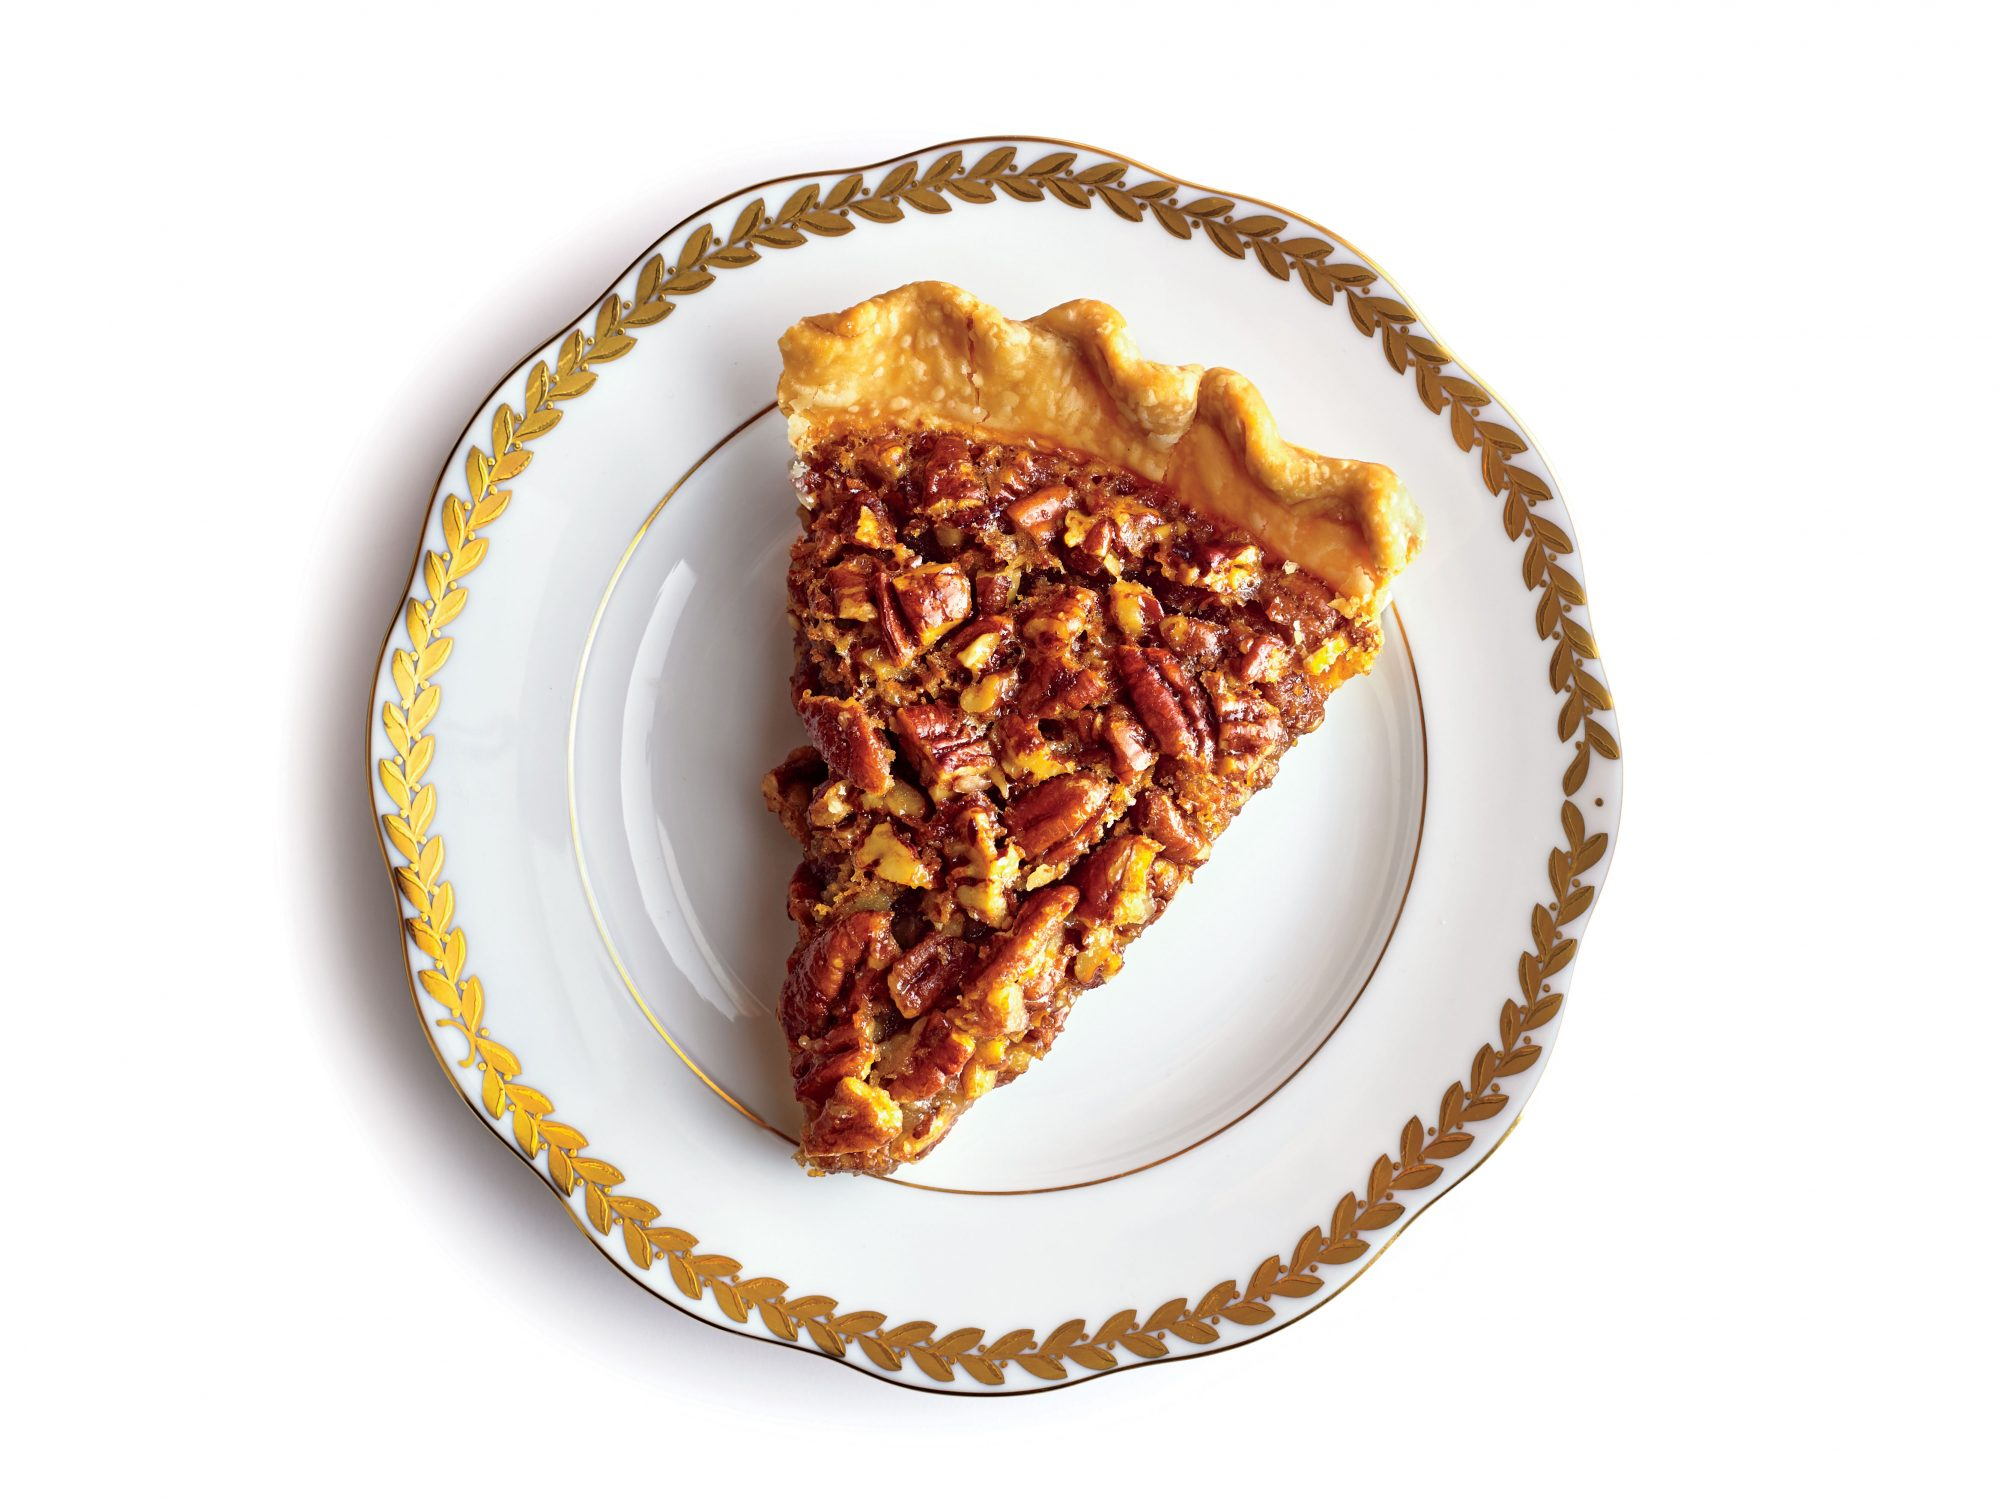 Pecan pie slice on plate